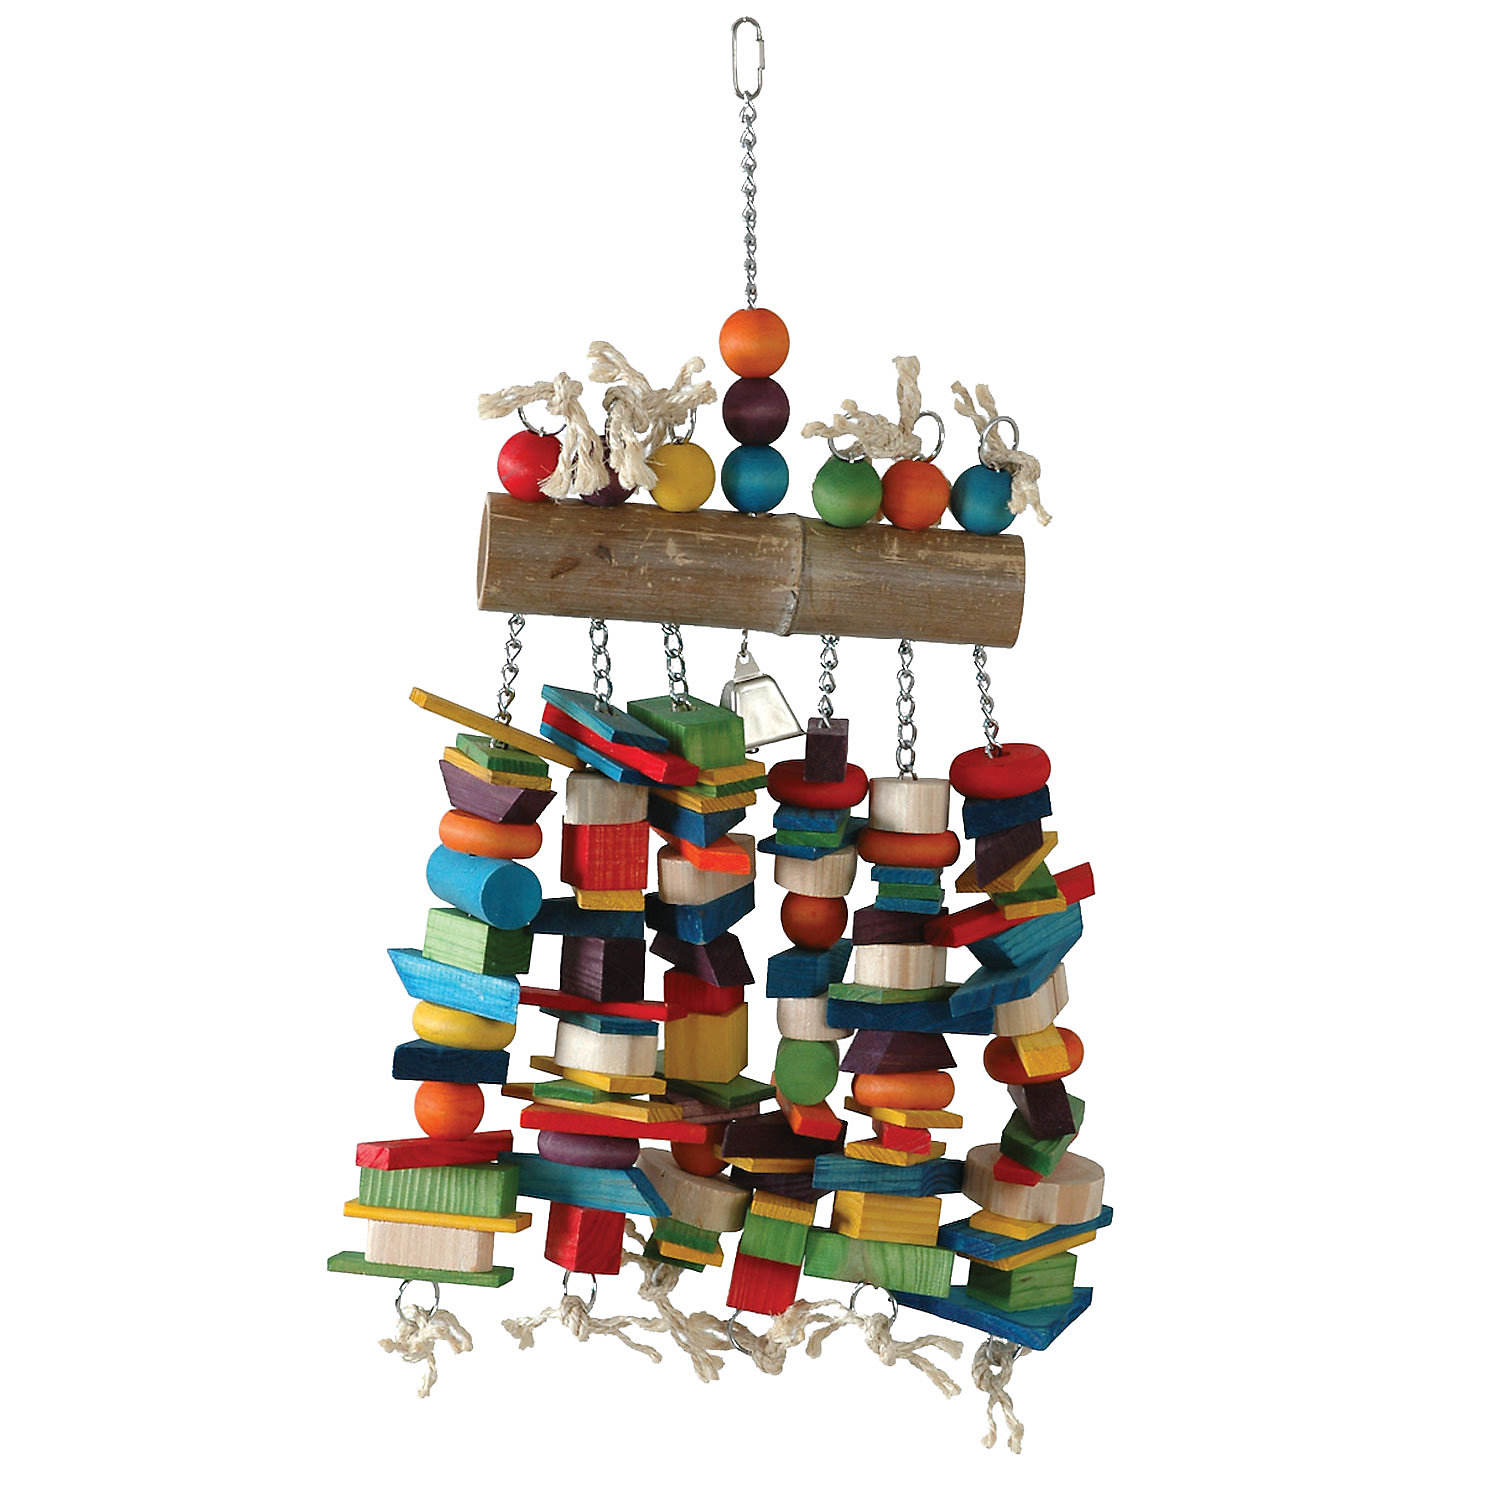 Caitec Bamboo Log Bird Toy with Bell 16 W X 27 H XLarge MultiColor